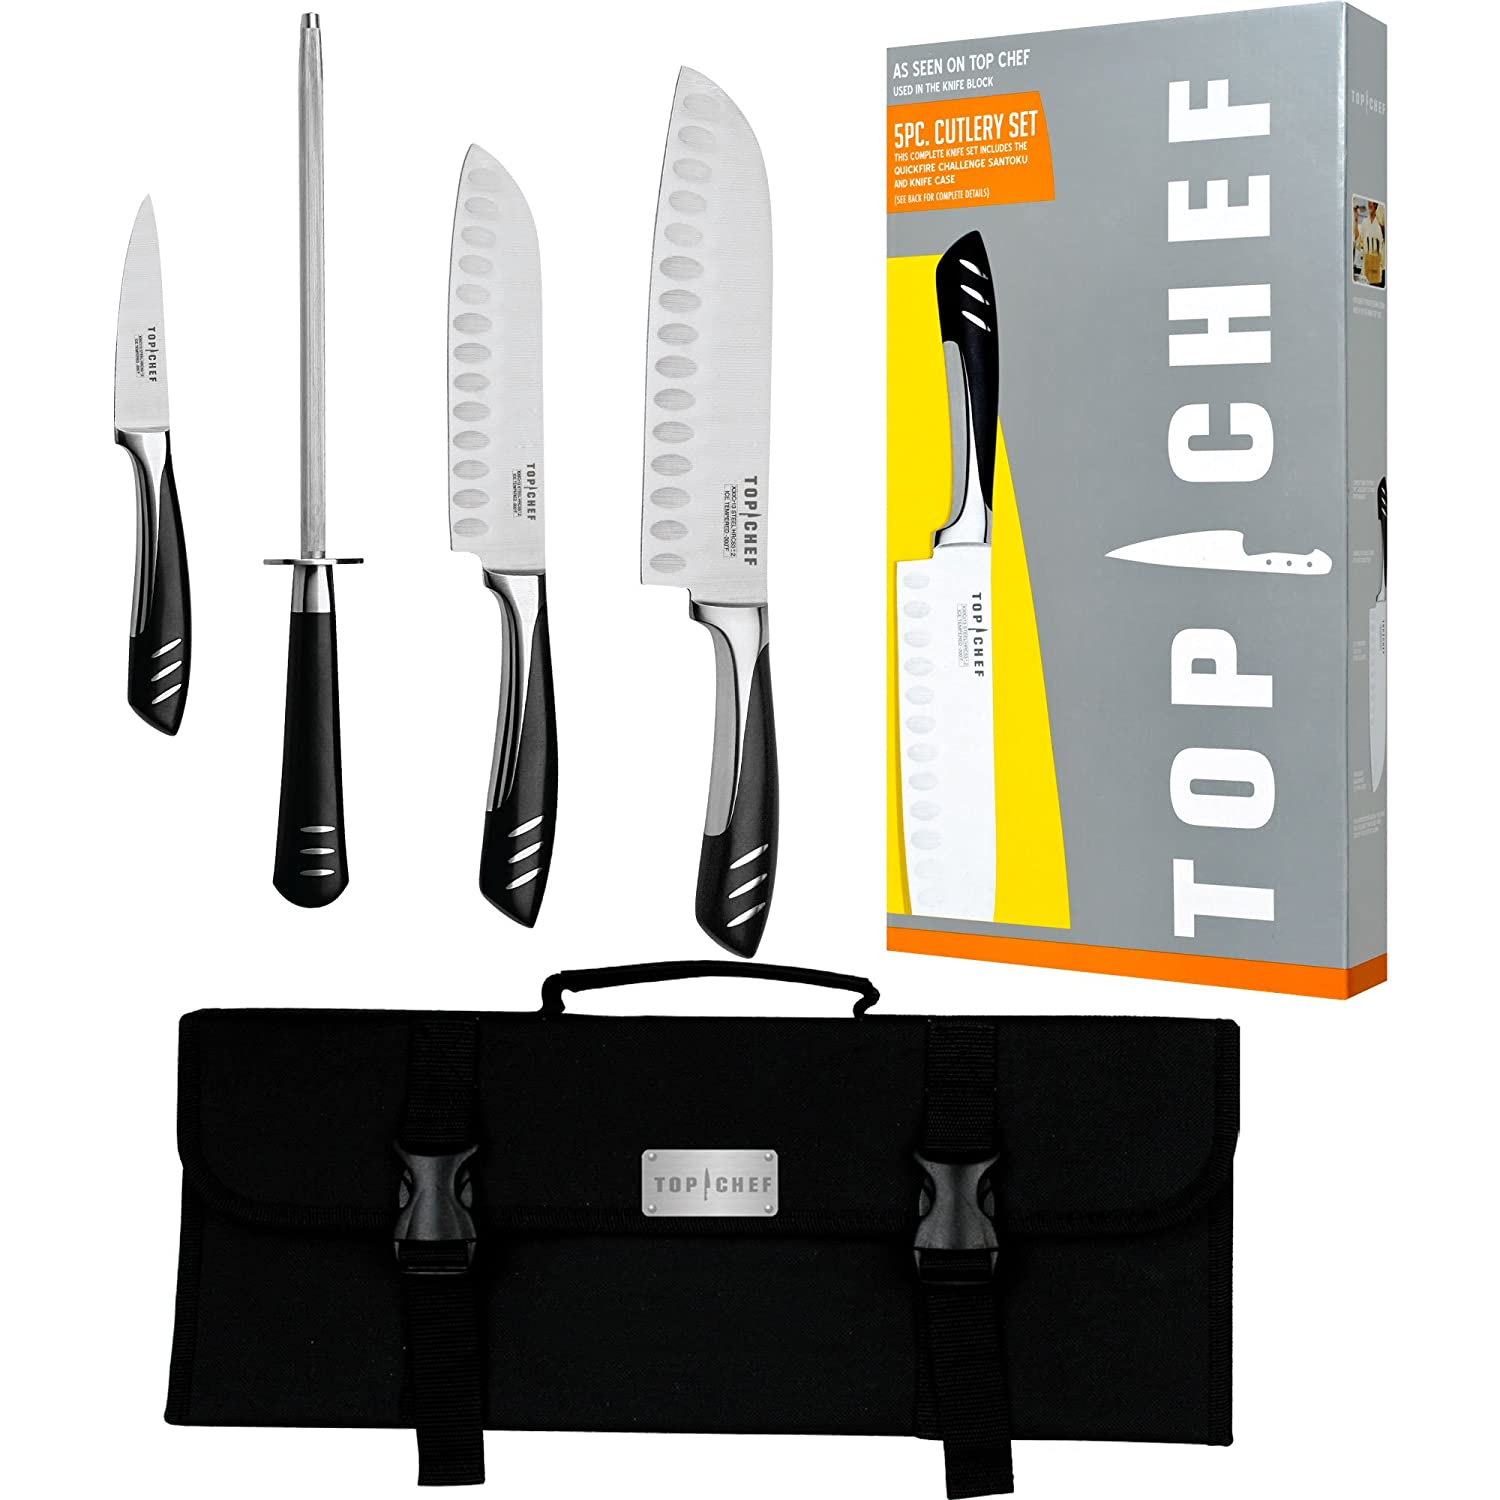 amazon com top chef by master cutlery 5 piece chef basic knife amazon com top chef by master cutlery 5 piece chef basic knife set with nylon carrying case kitchen dining